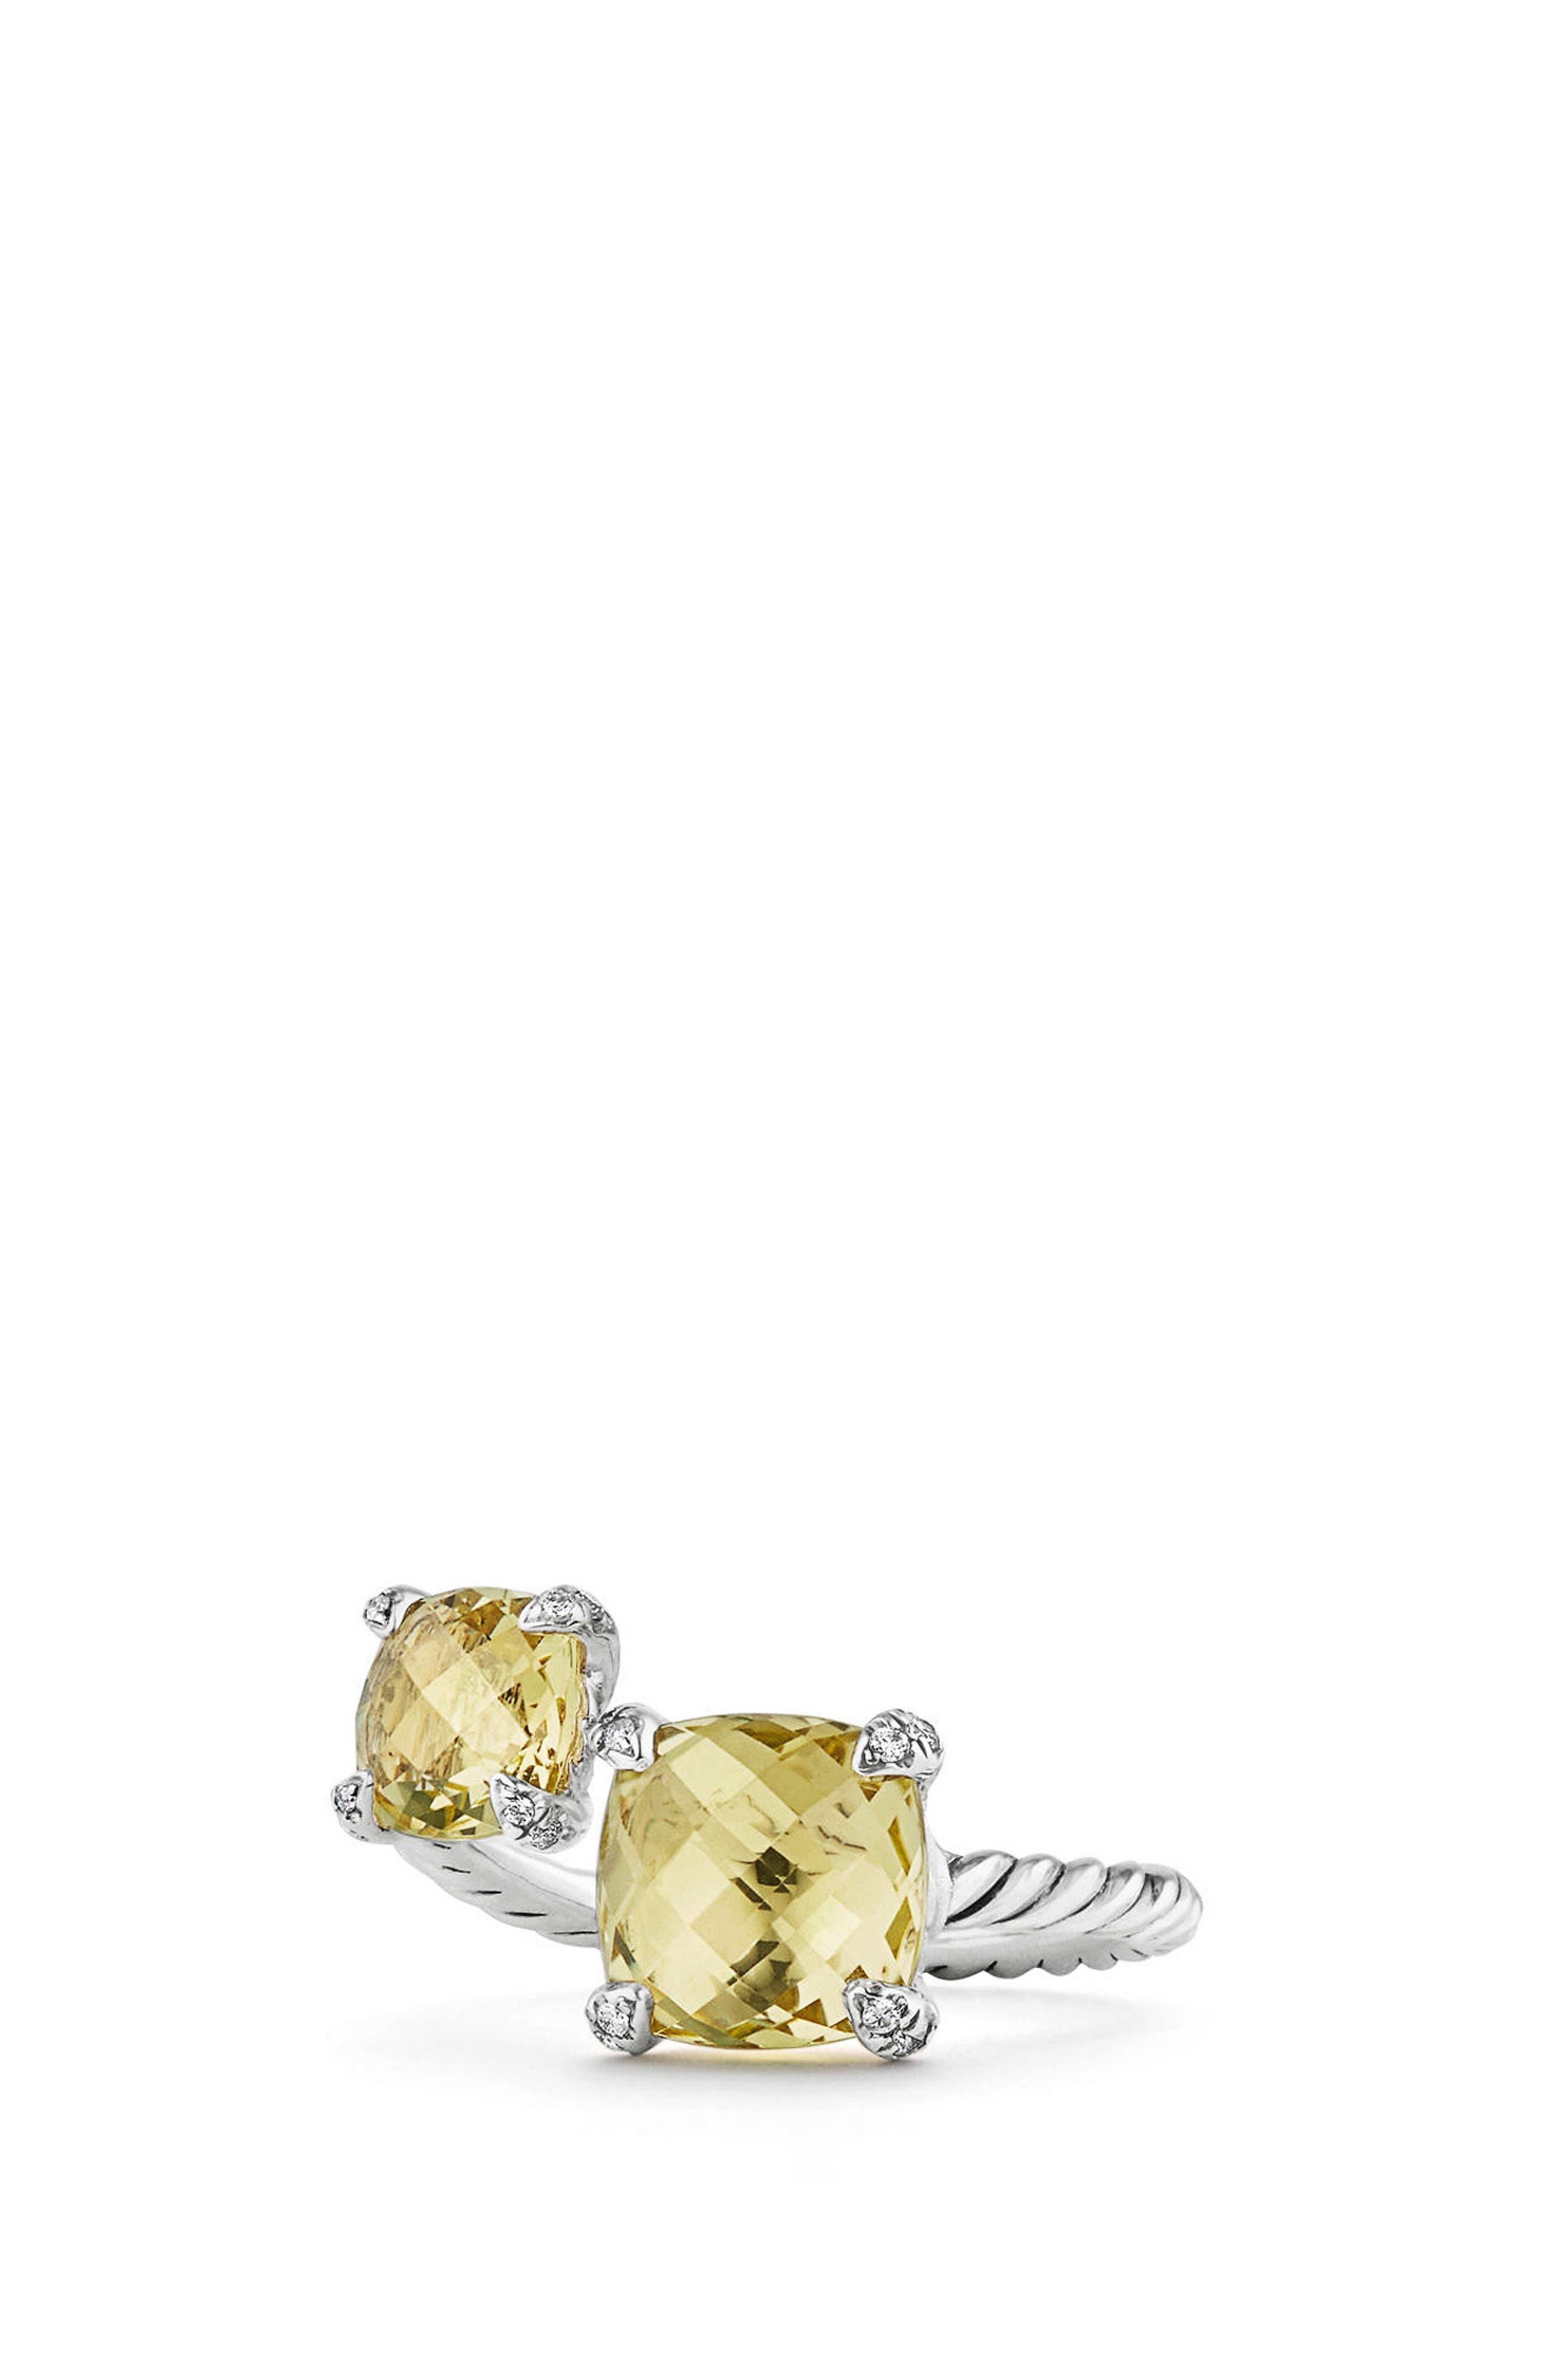 Châtelaine Bypass Ring with Diamonds,                         Main,                         color, Lemon Citrine?